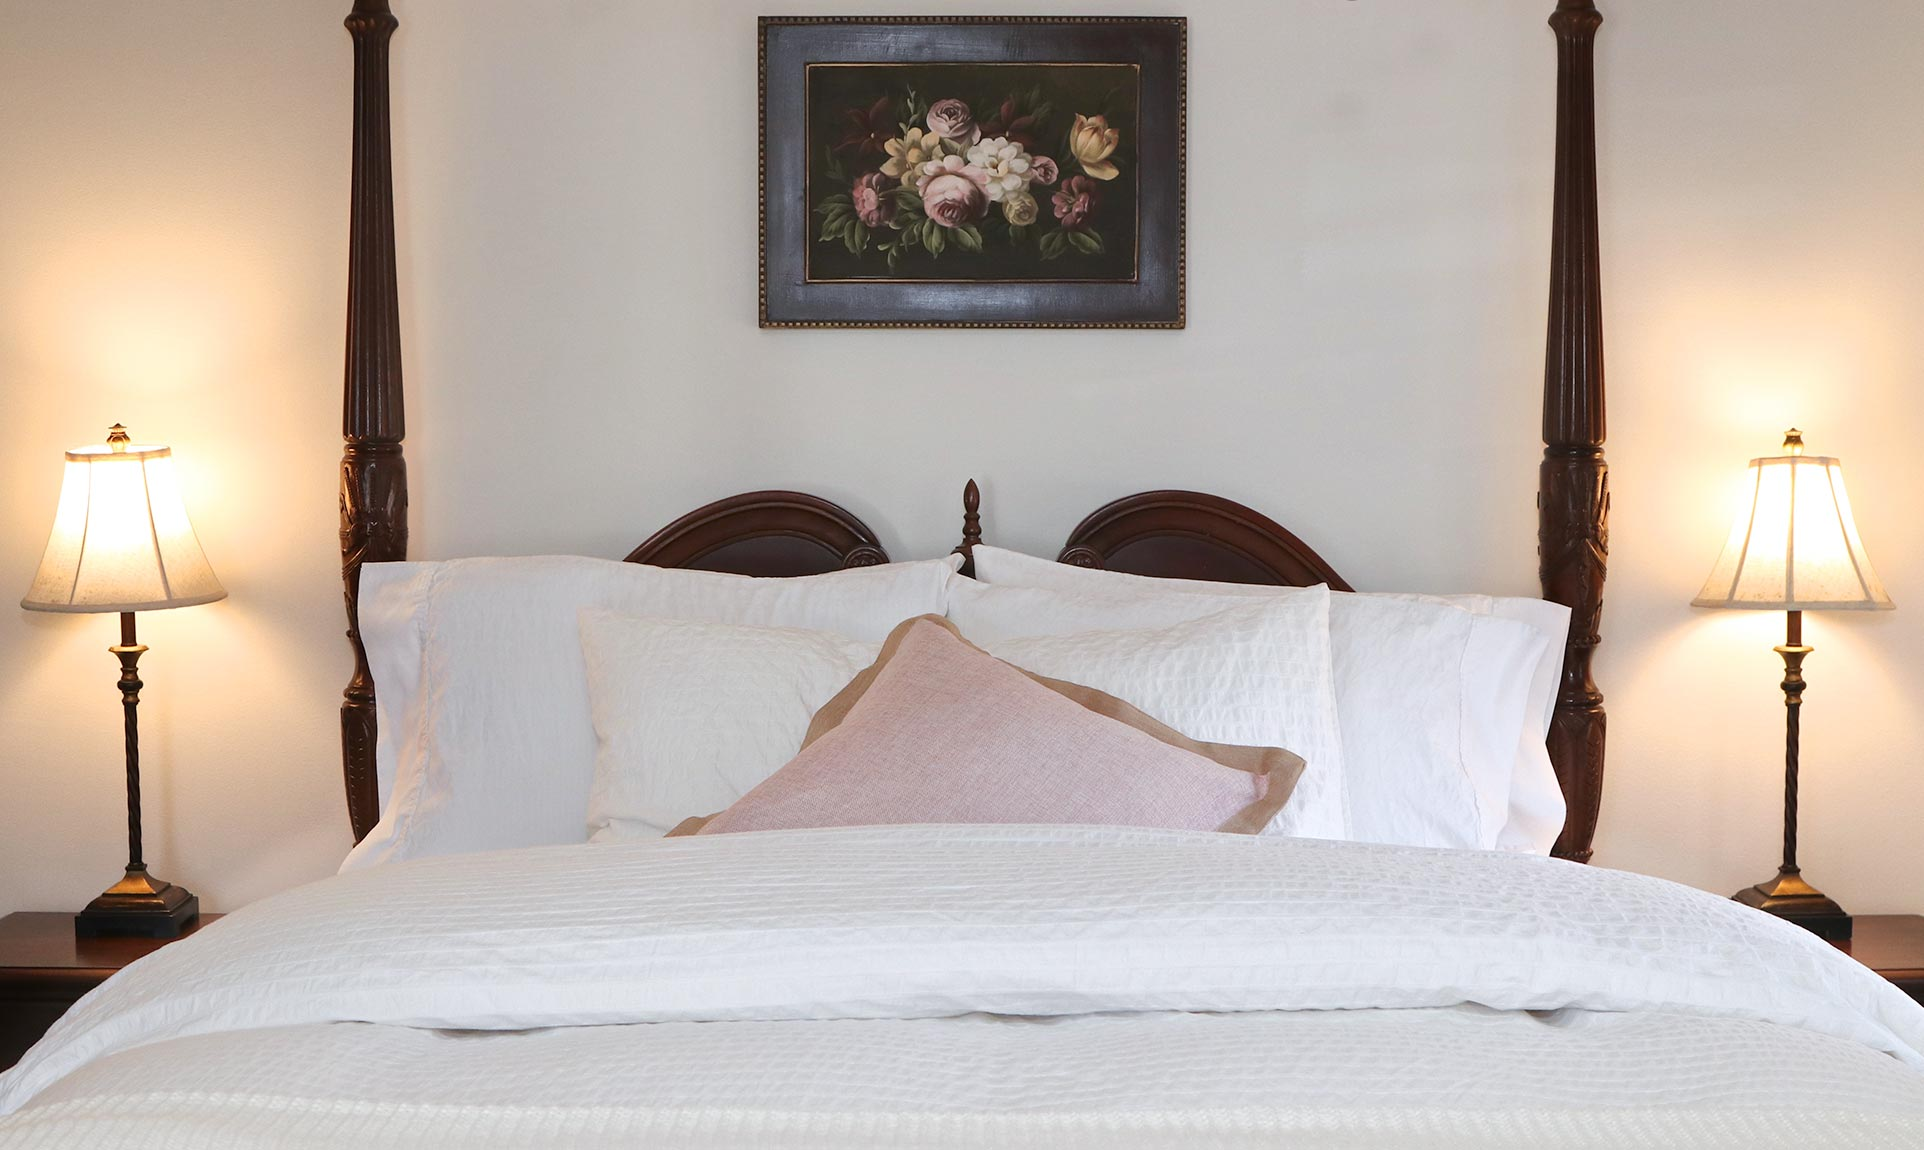 Queen size bed with two lamps on side tables flanking the bed